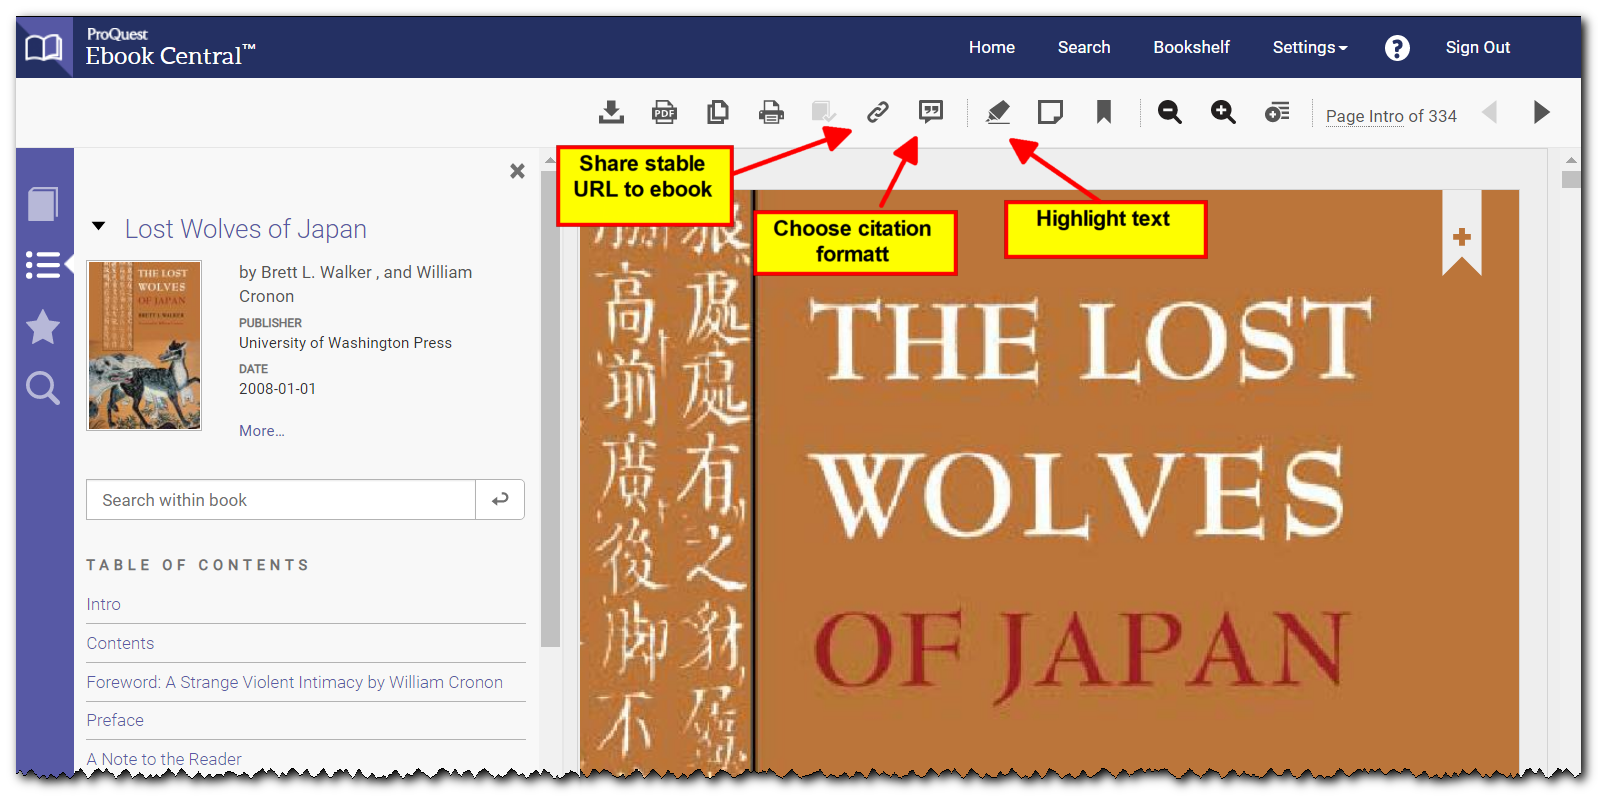 Ebook tool menu showing icons for autoformat citation, highlight text, and share stable URL for ebook.